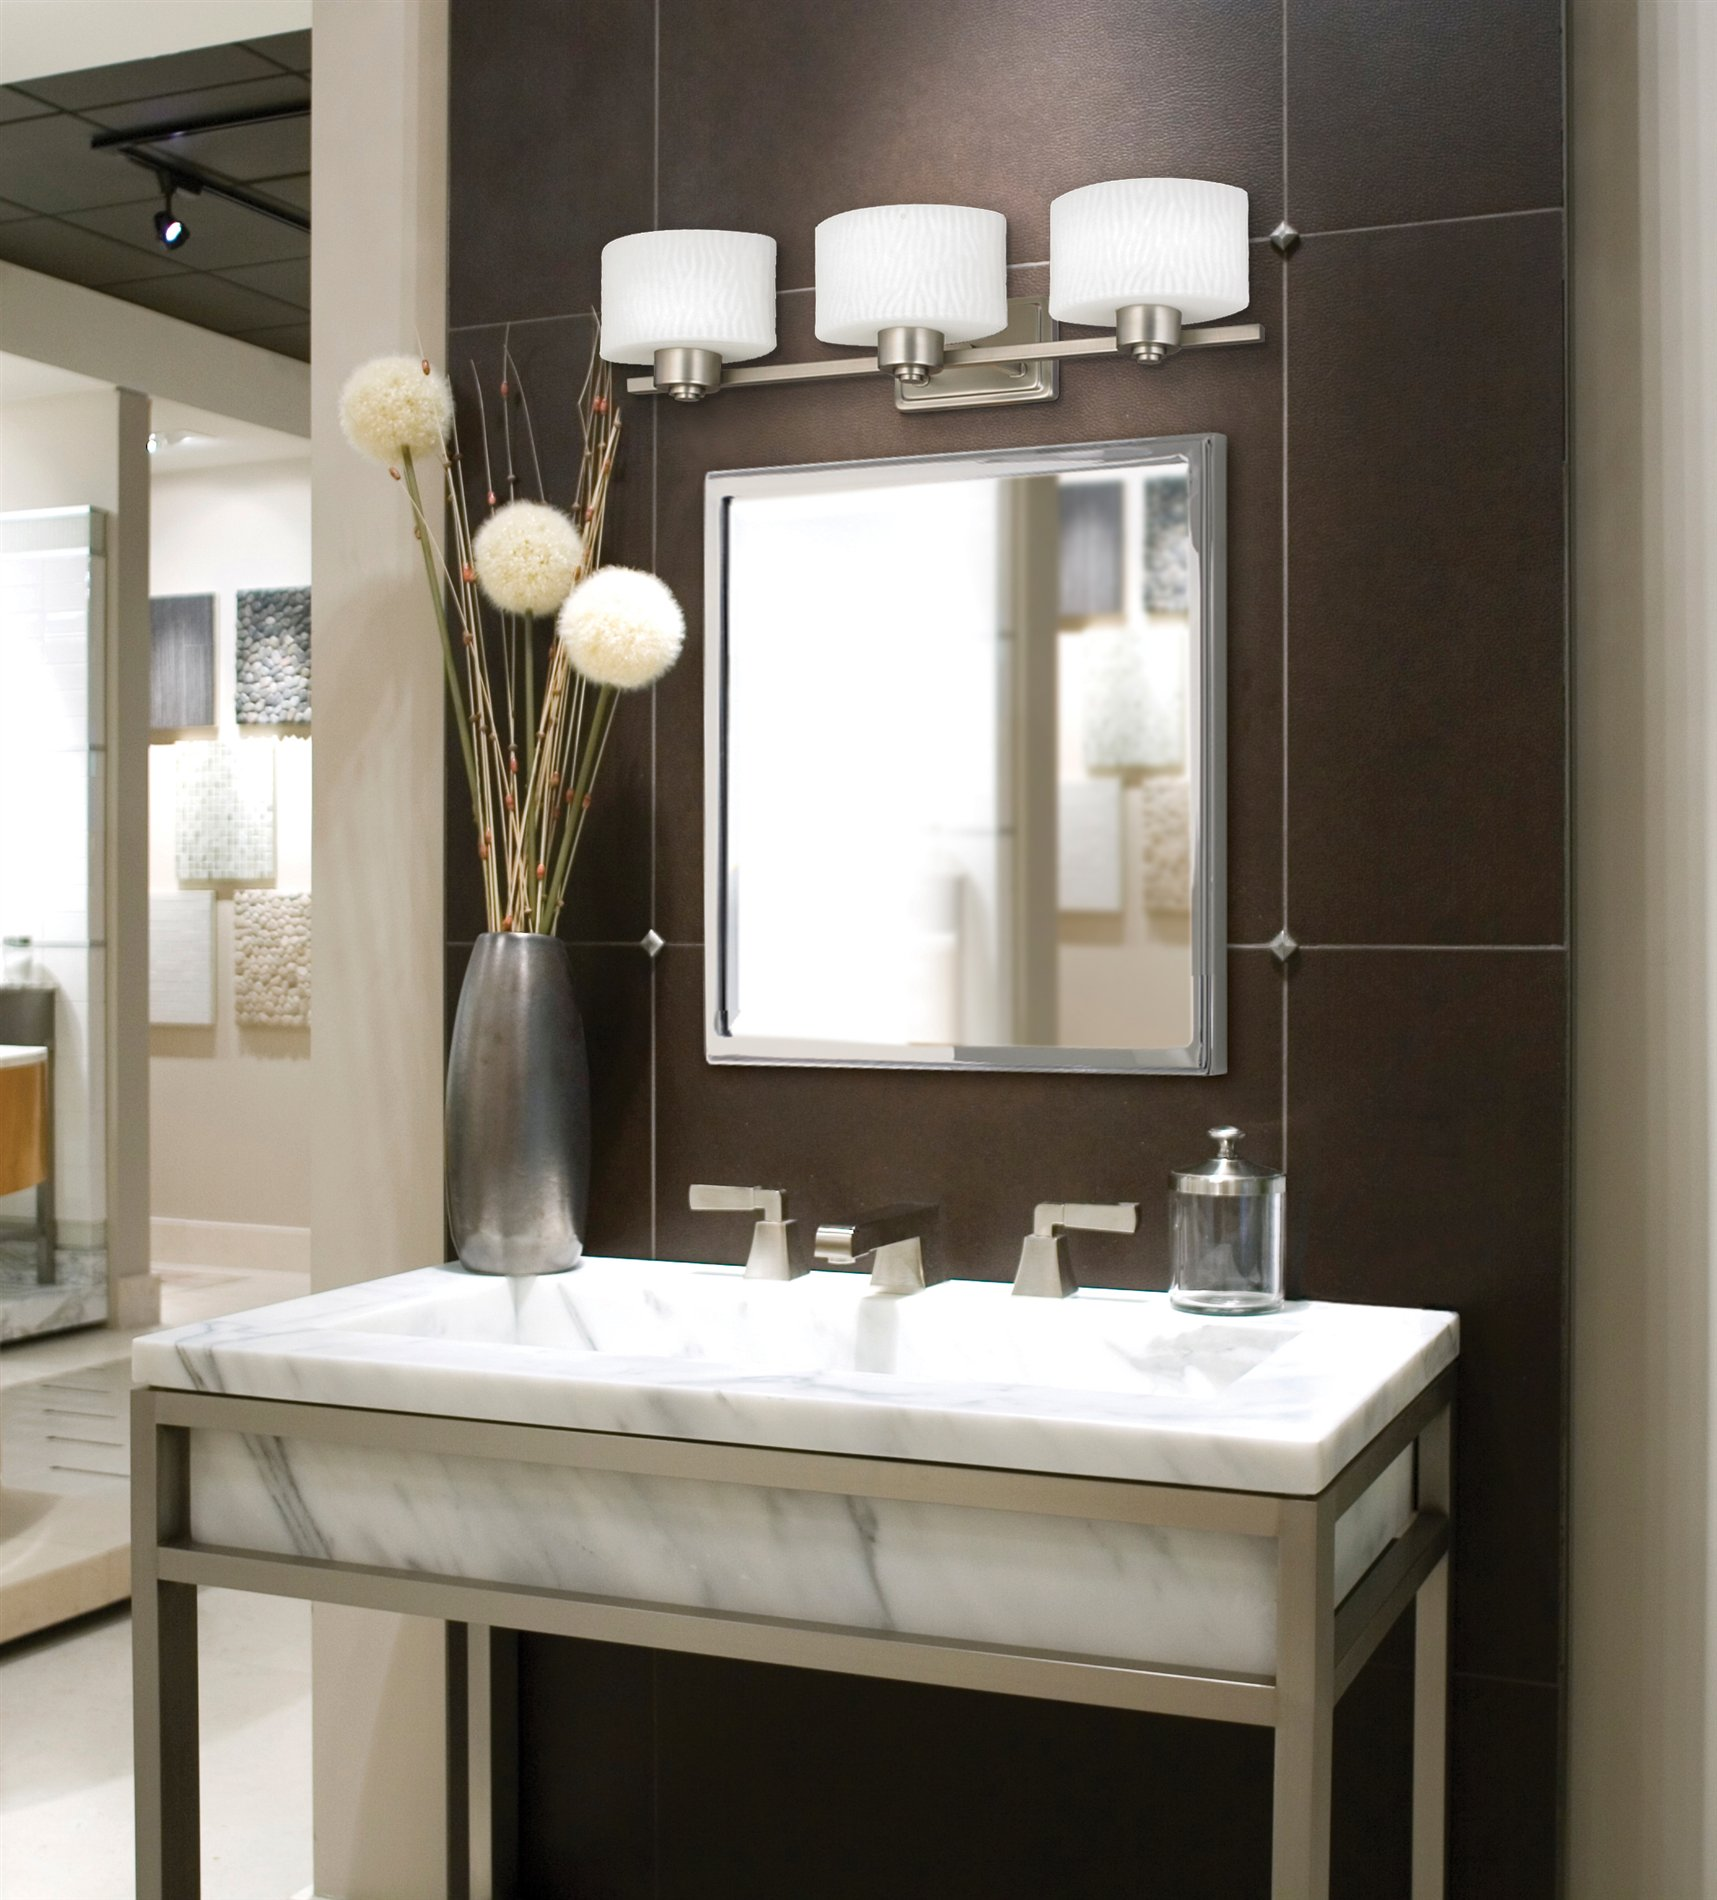 Modern Bathroom With Triple Lowes Bathroom Lighting Plus Mirror And Sink  Plus Faucet Ideas